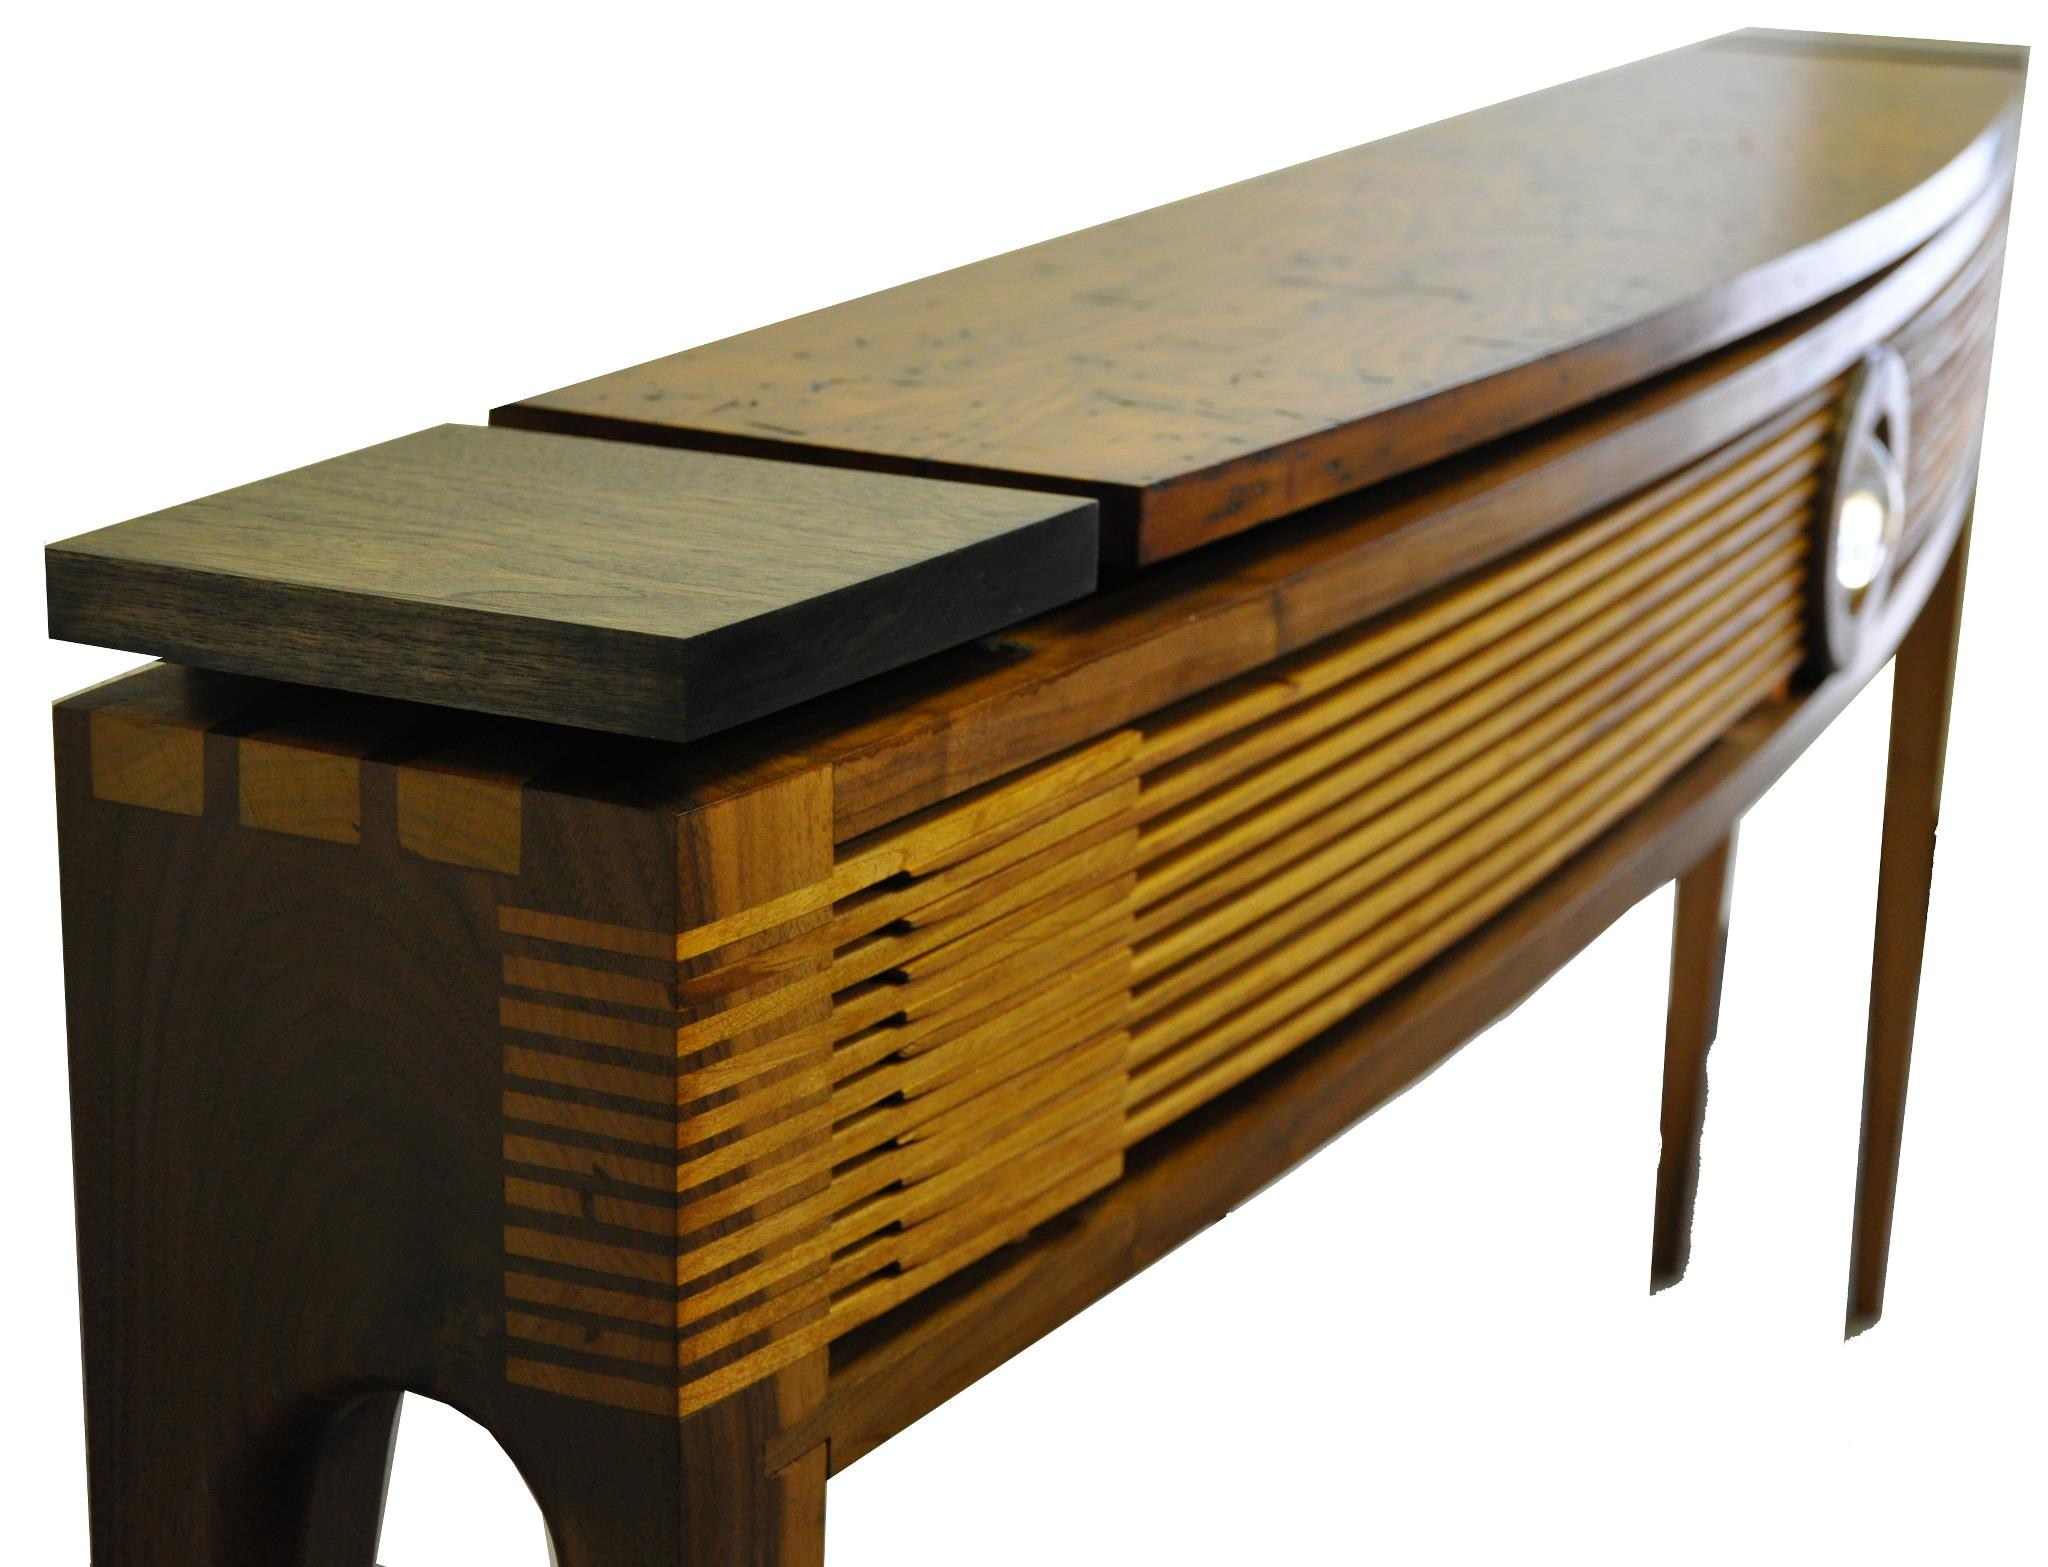 Console designed and made by Christopher Simpson